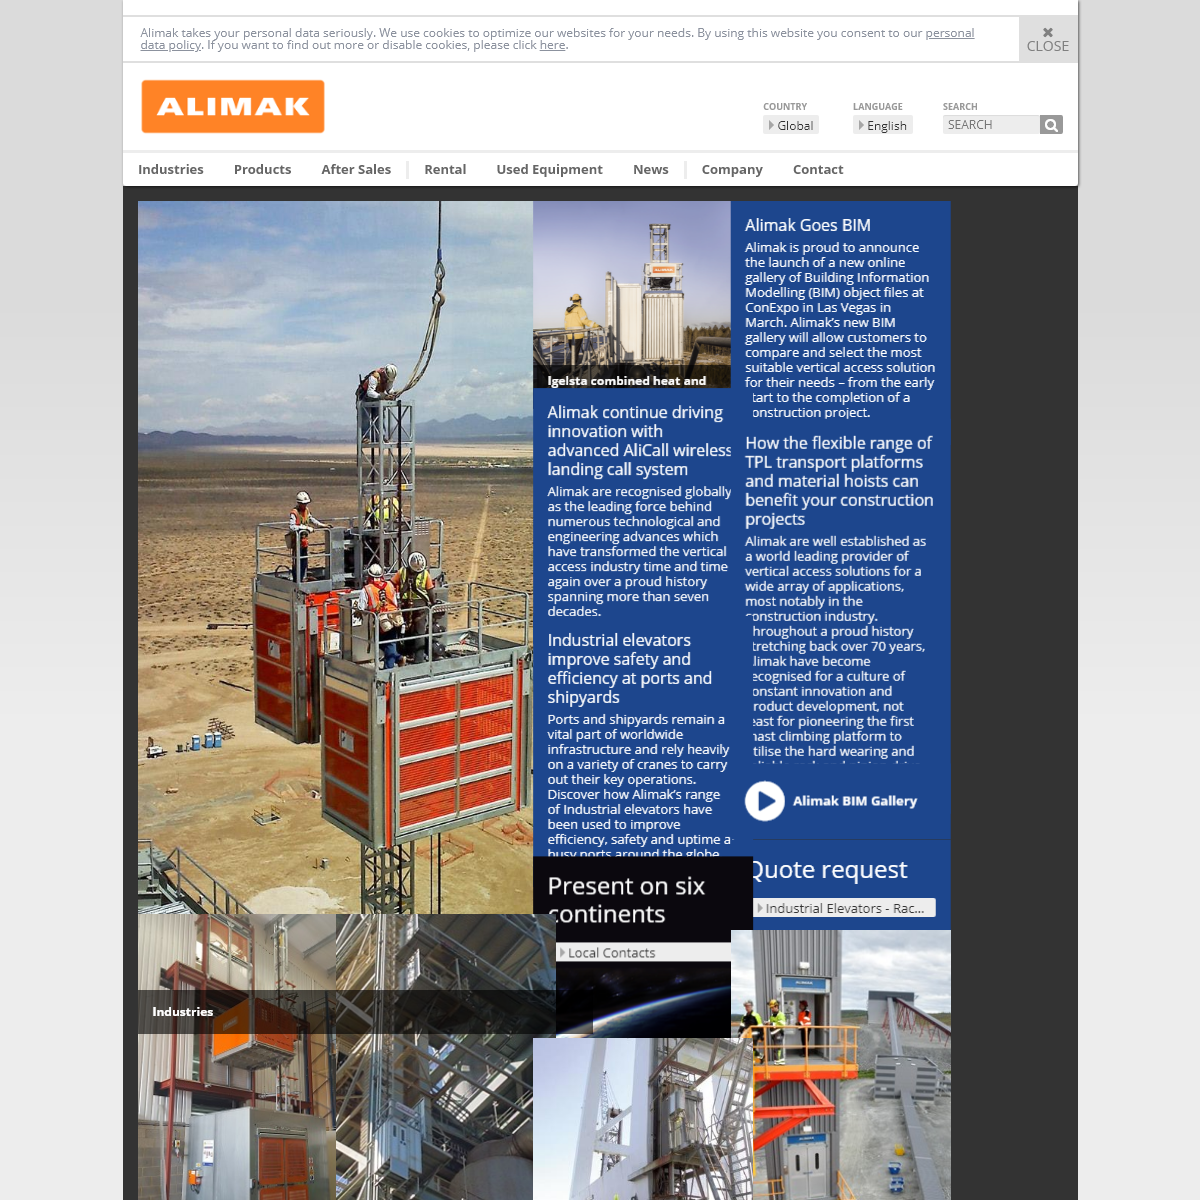 Rack and Pinion Elevators, lifts, hoists and platforms for vertical access